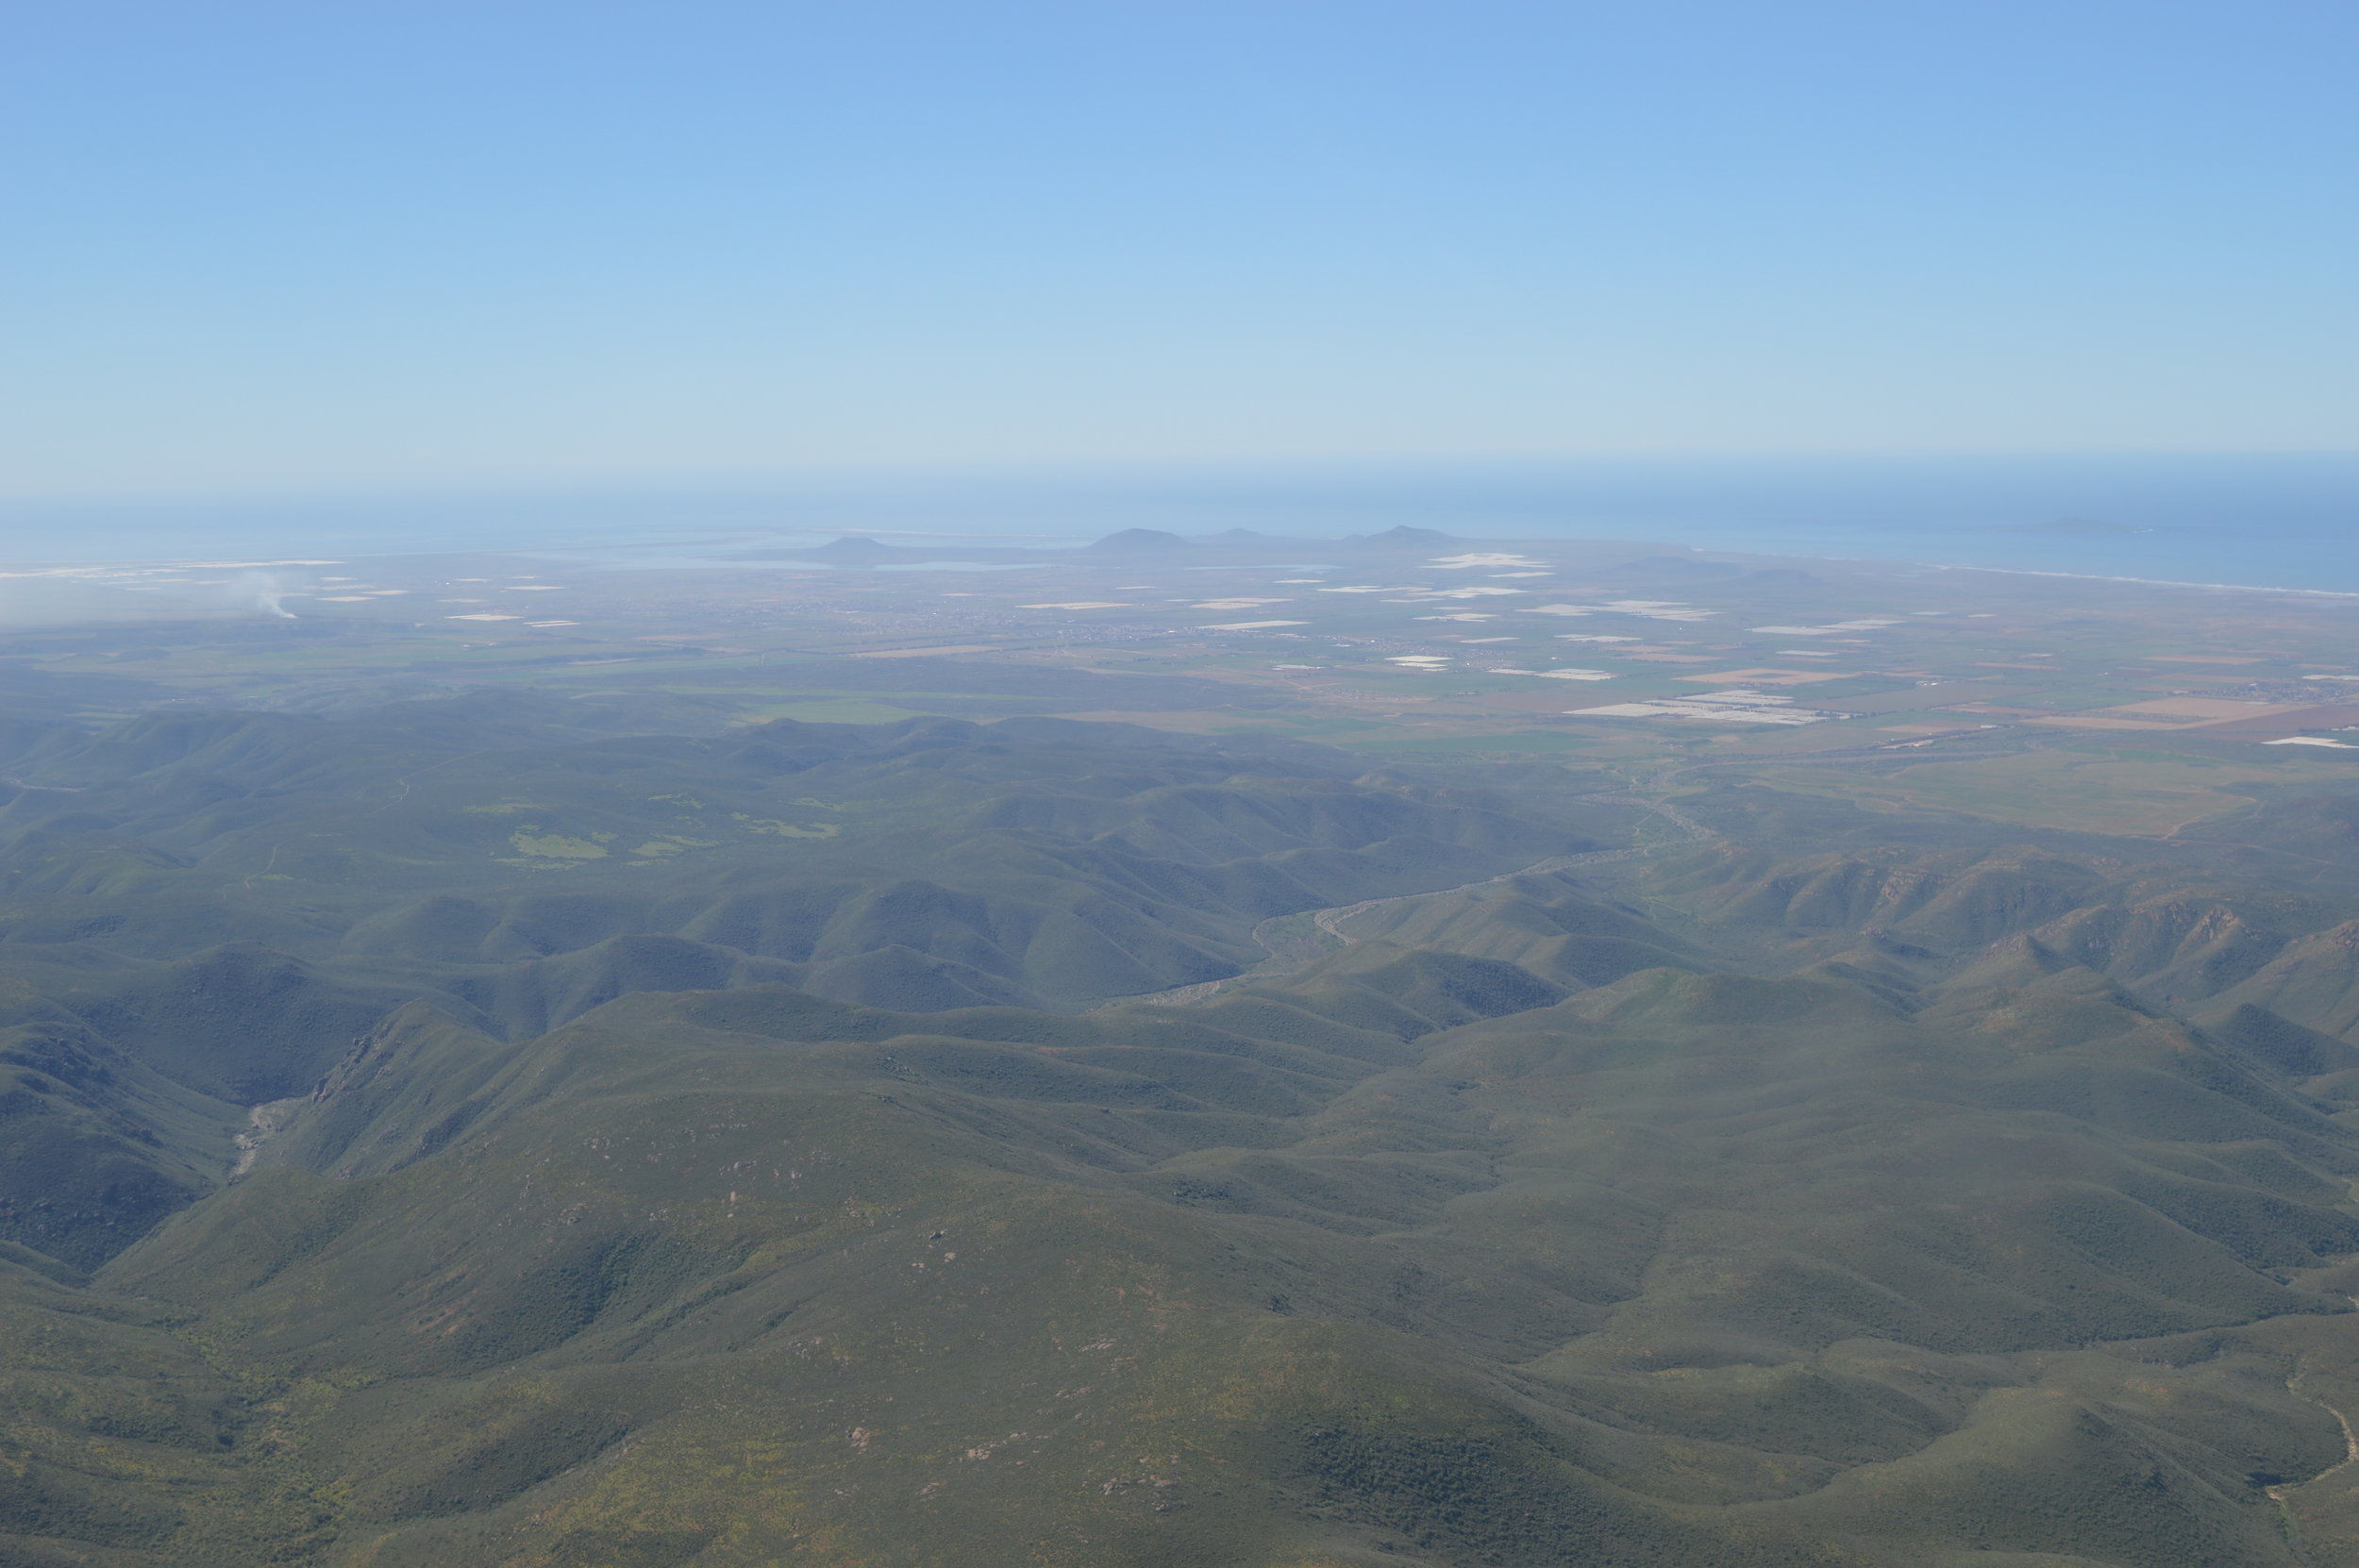 Aerial view of Sierra de San Pedro Martir Mountains, Sea of Cortez in background.